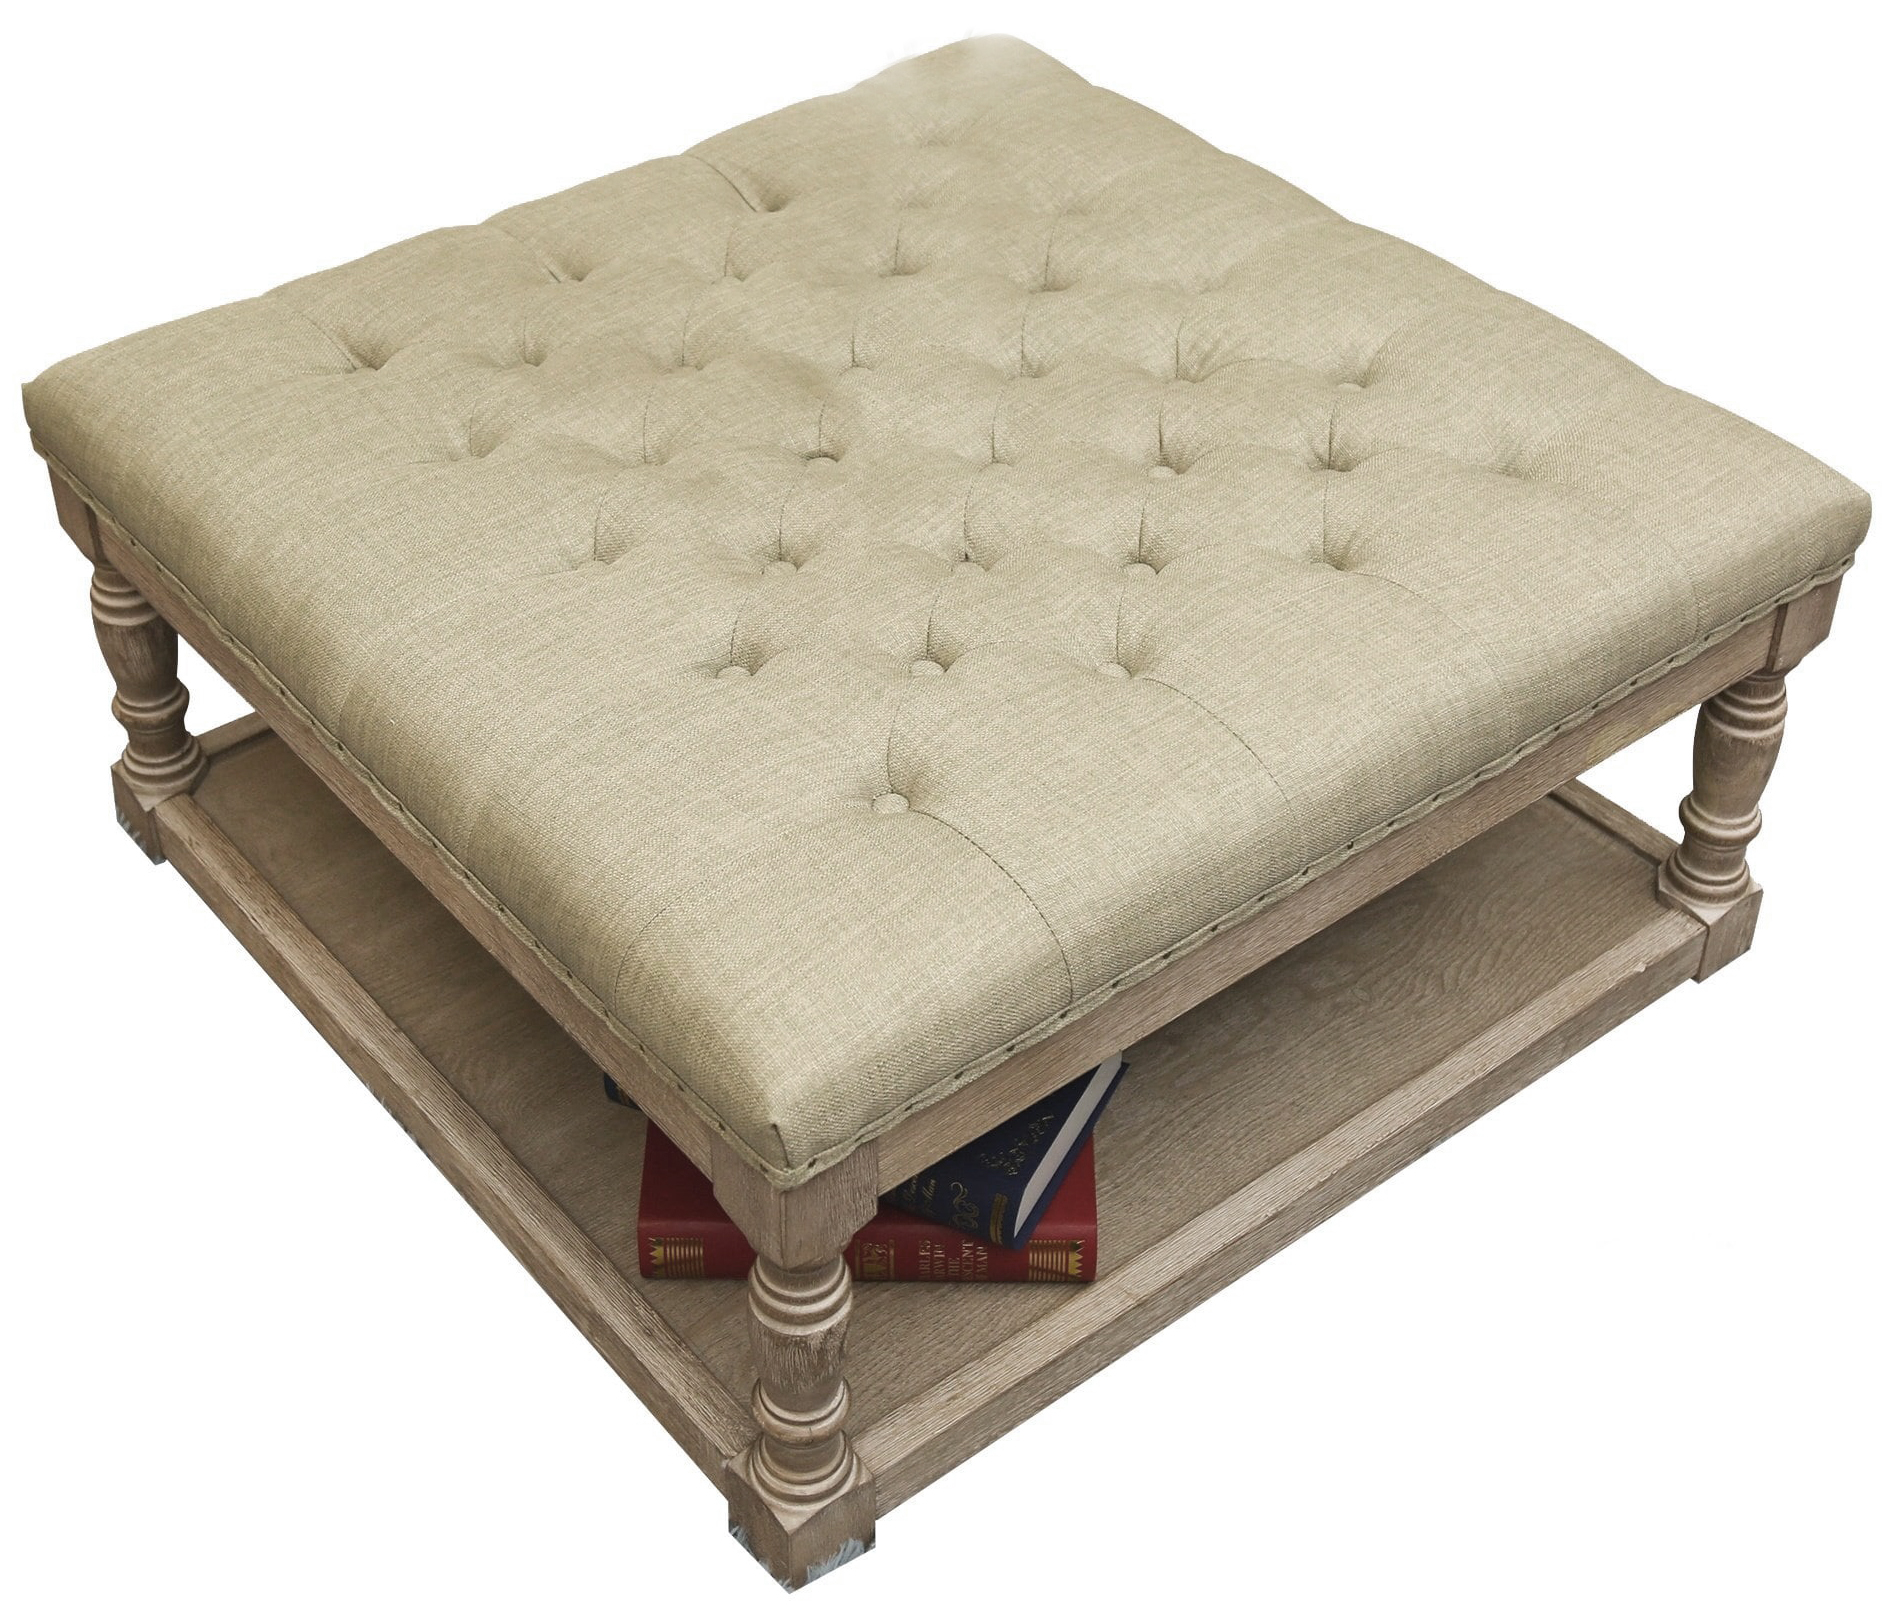 Cairona Tufted Ottoman - → SHOP IT NOW